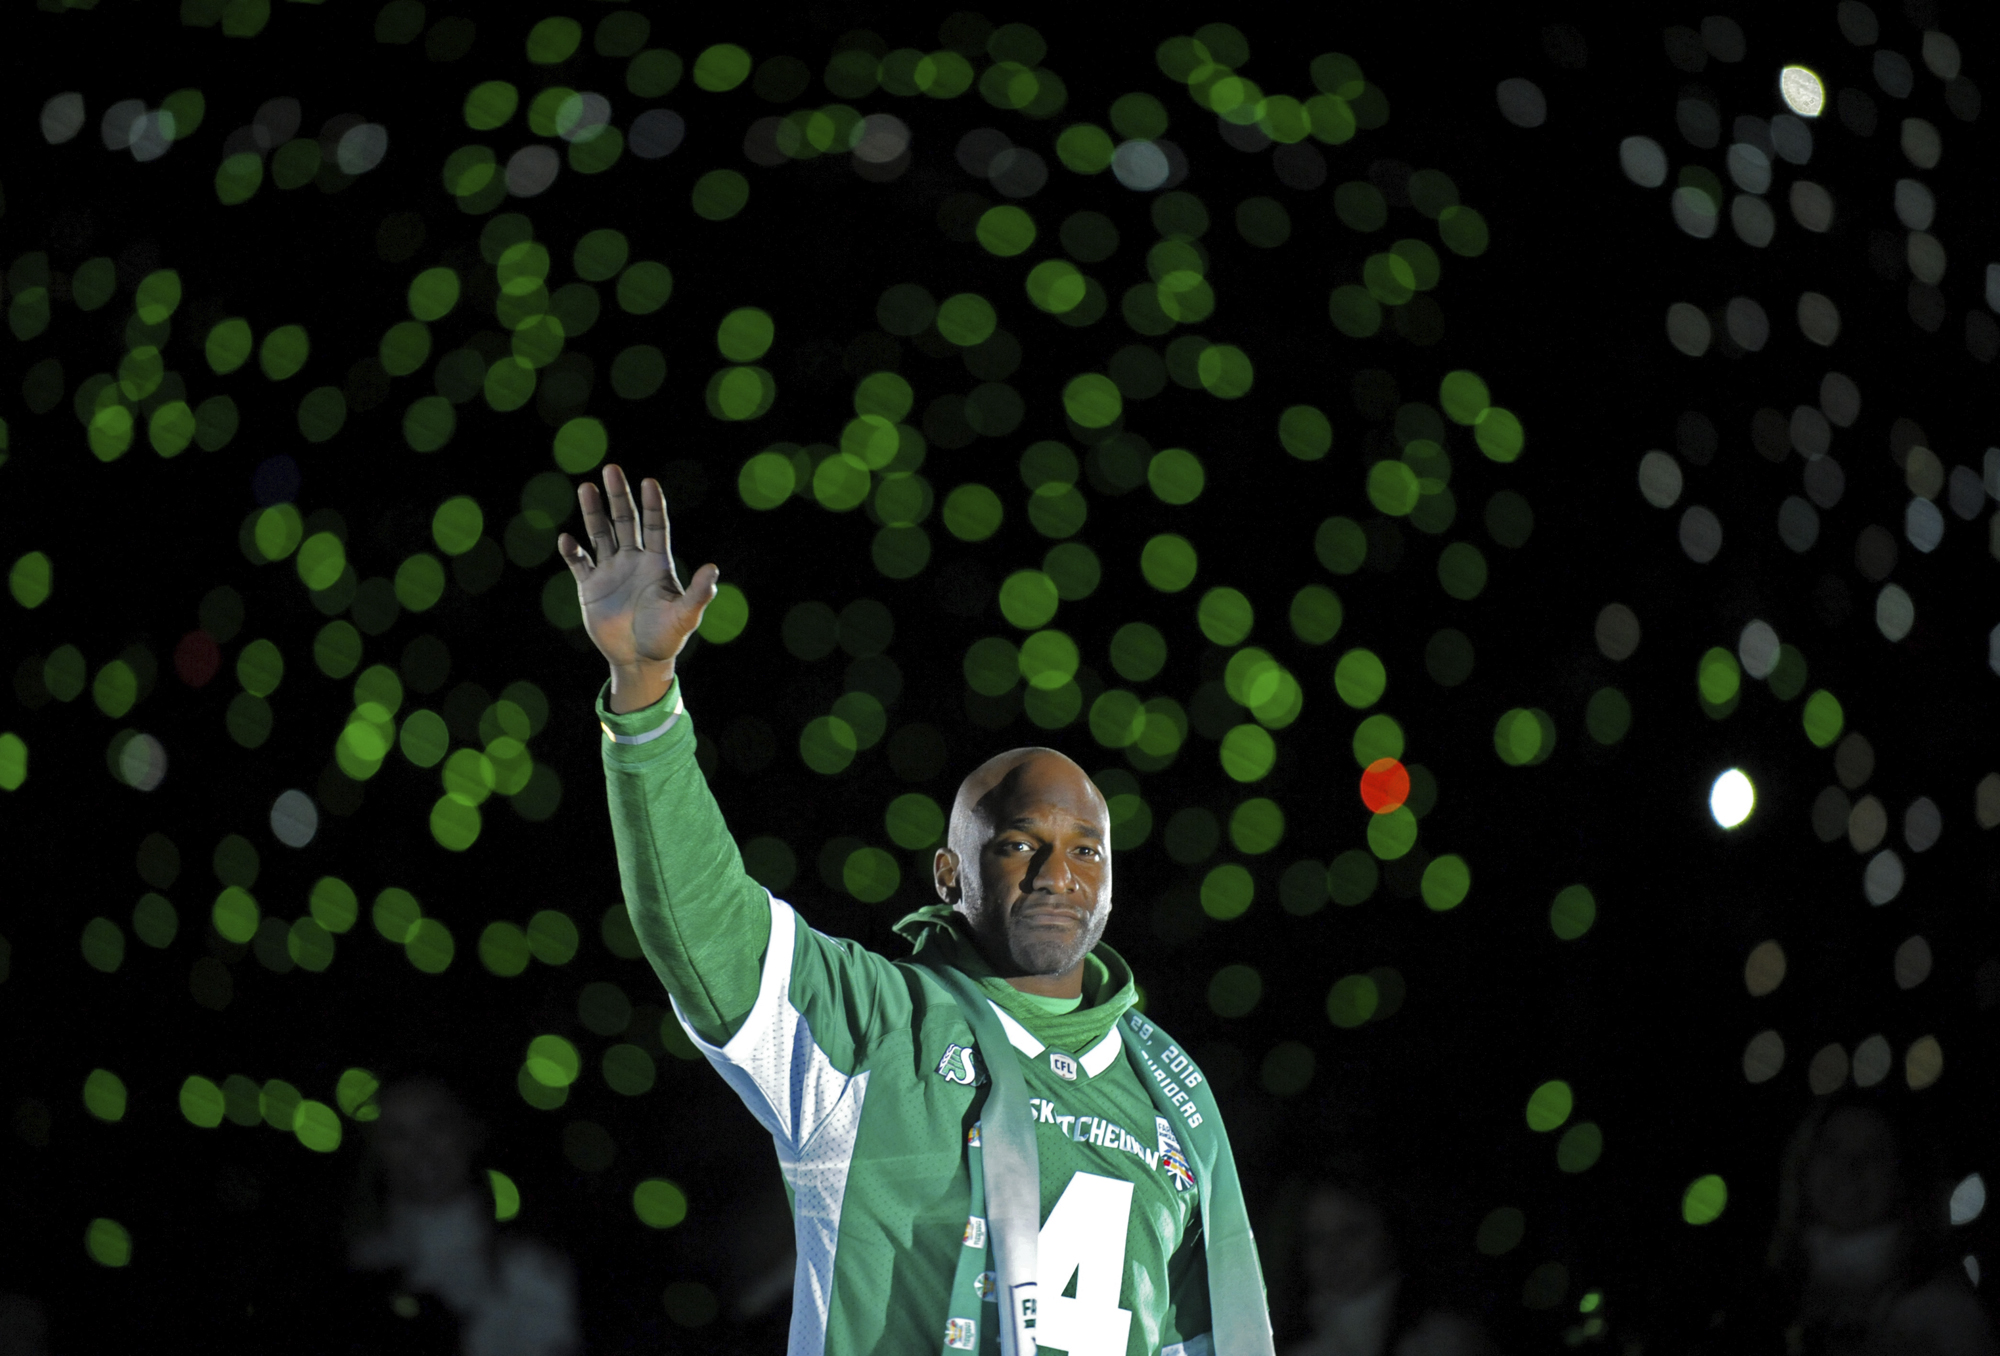 <small>Darian Durant waves to the crowd after the last ever CFL game at Mosaic Stadium (and what turned out to be Durant's 